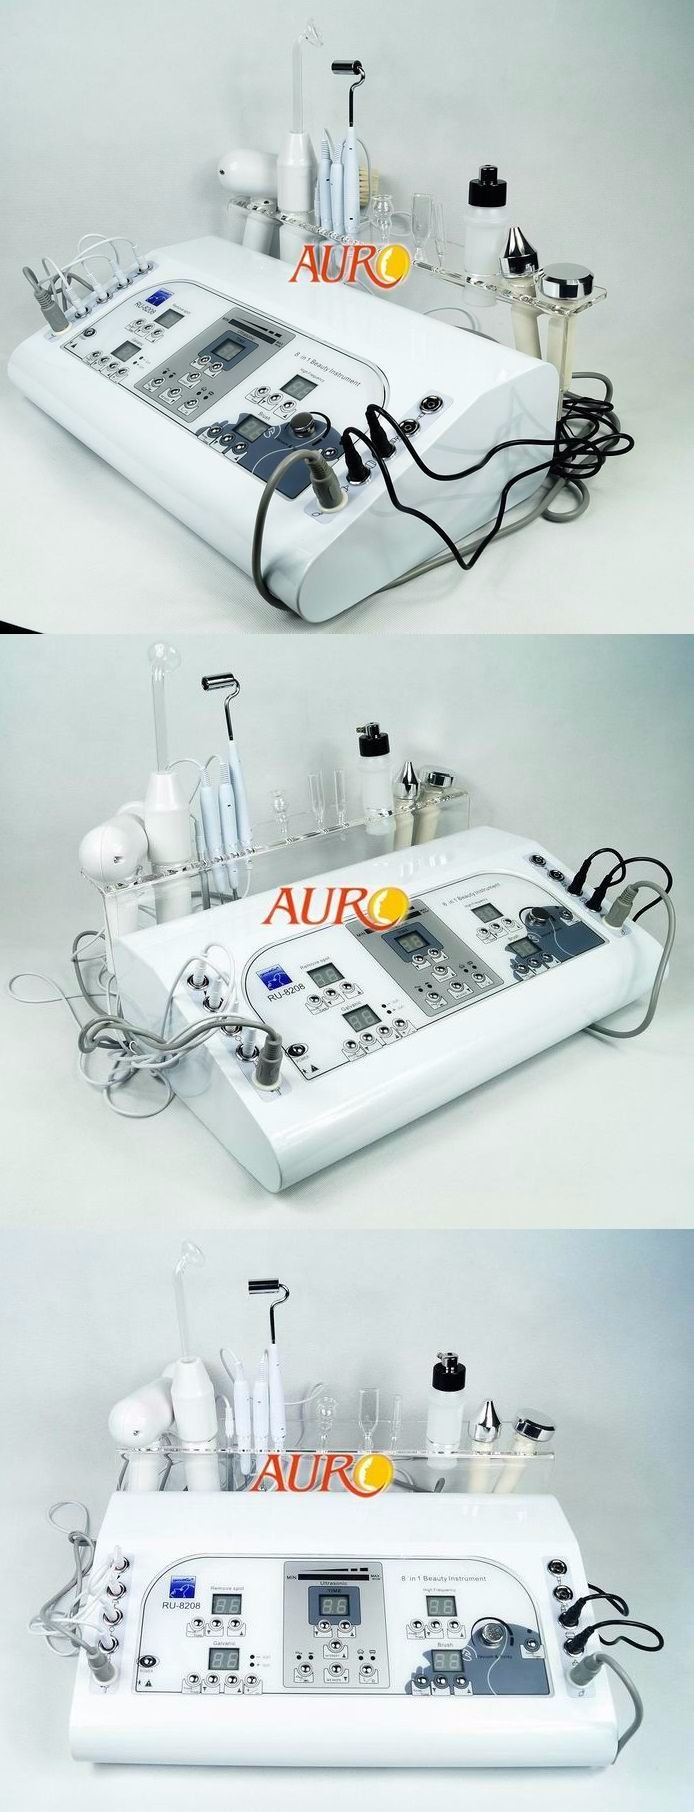 Au-8208 Best selling 7-in-1 multifunctional cheap facial tool beauty salon equipment